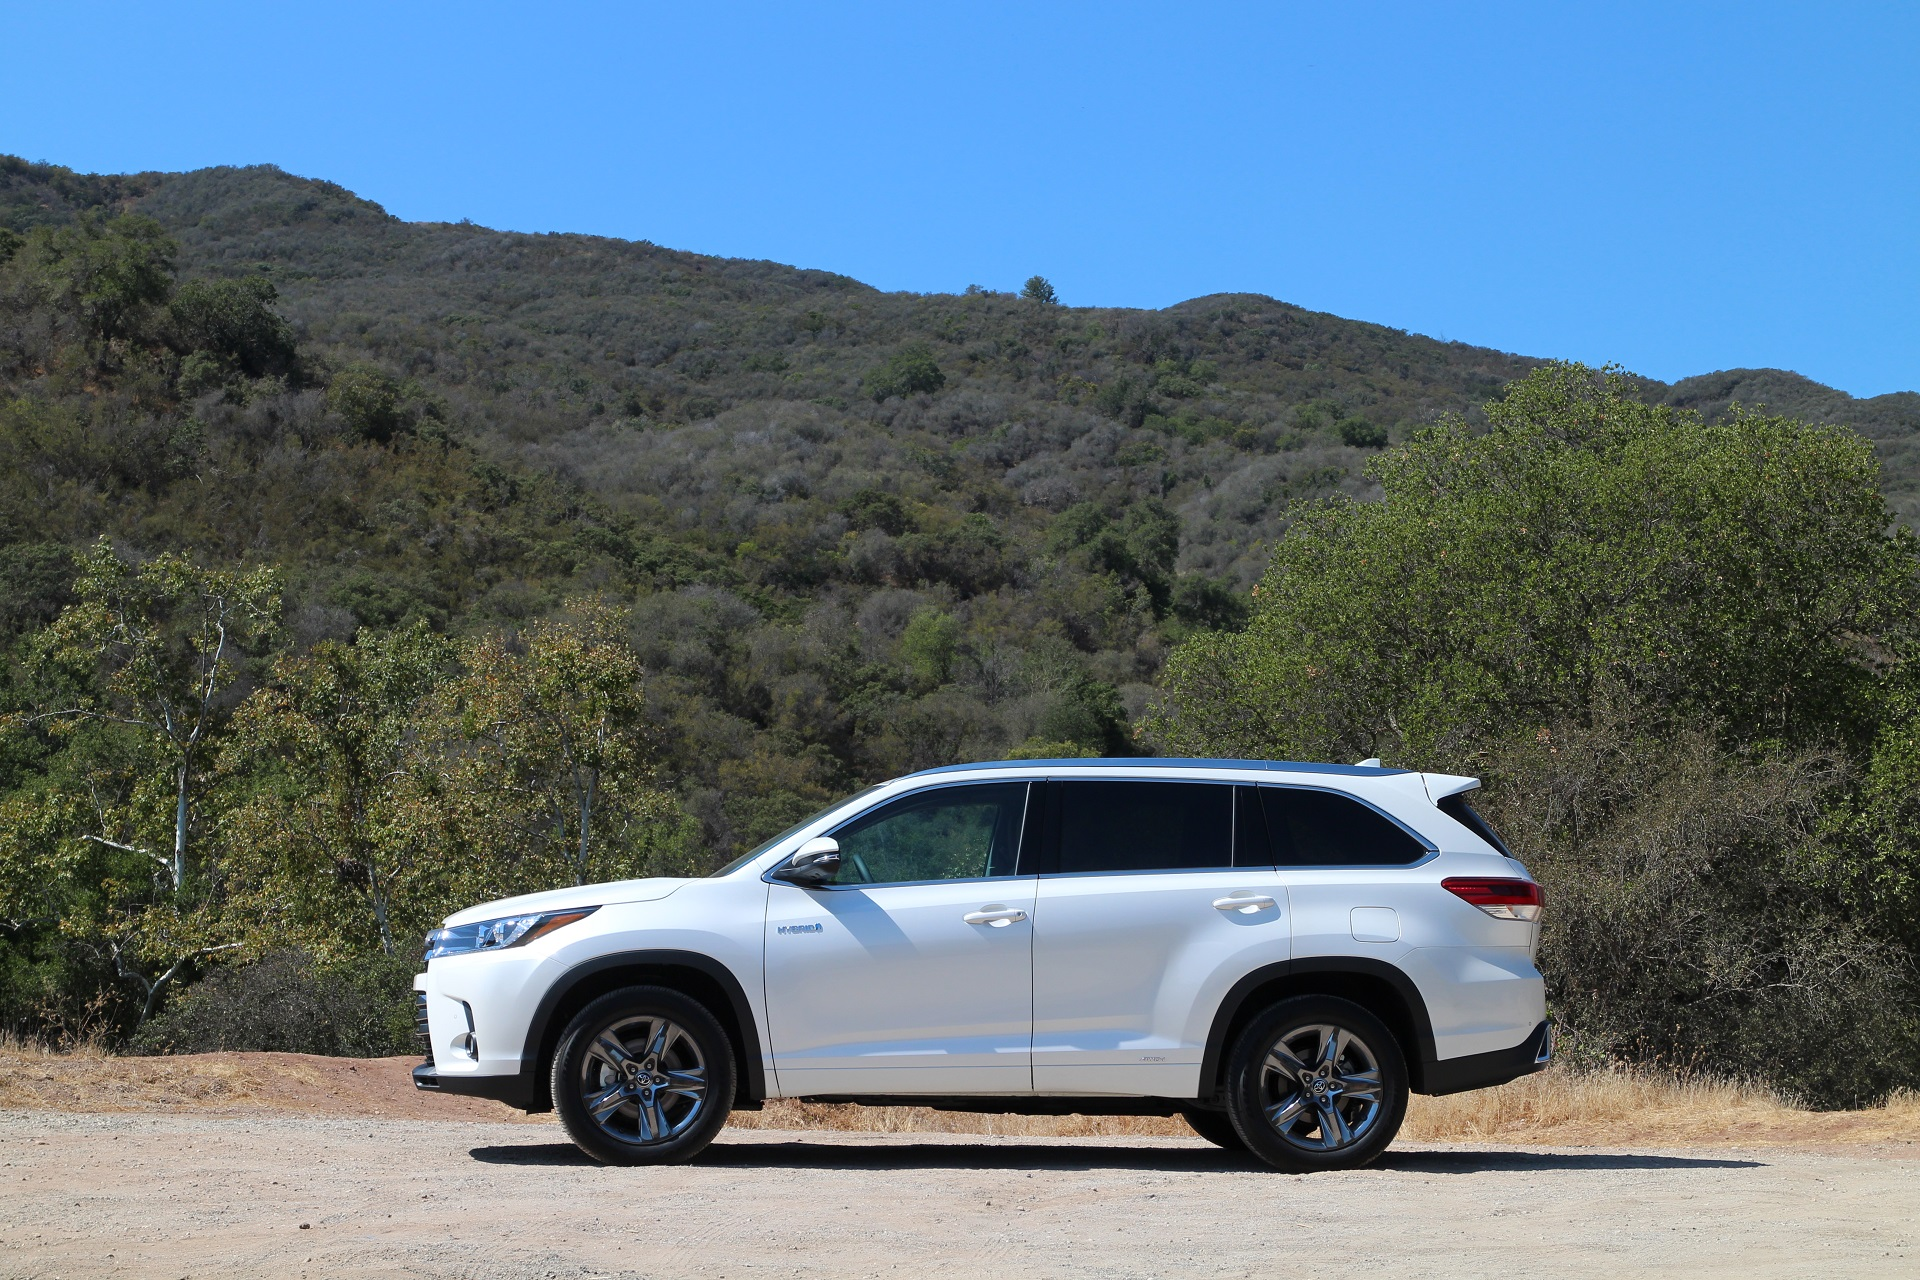 2017 Toyota Highlander Hybrid: brief drive of updated three-row SUV